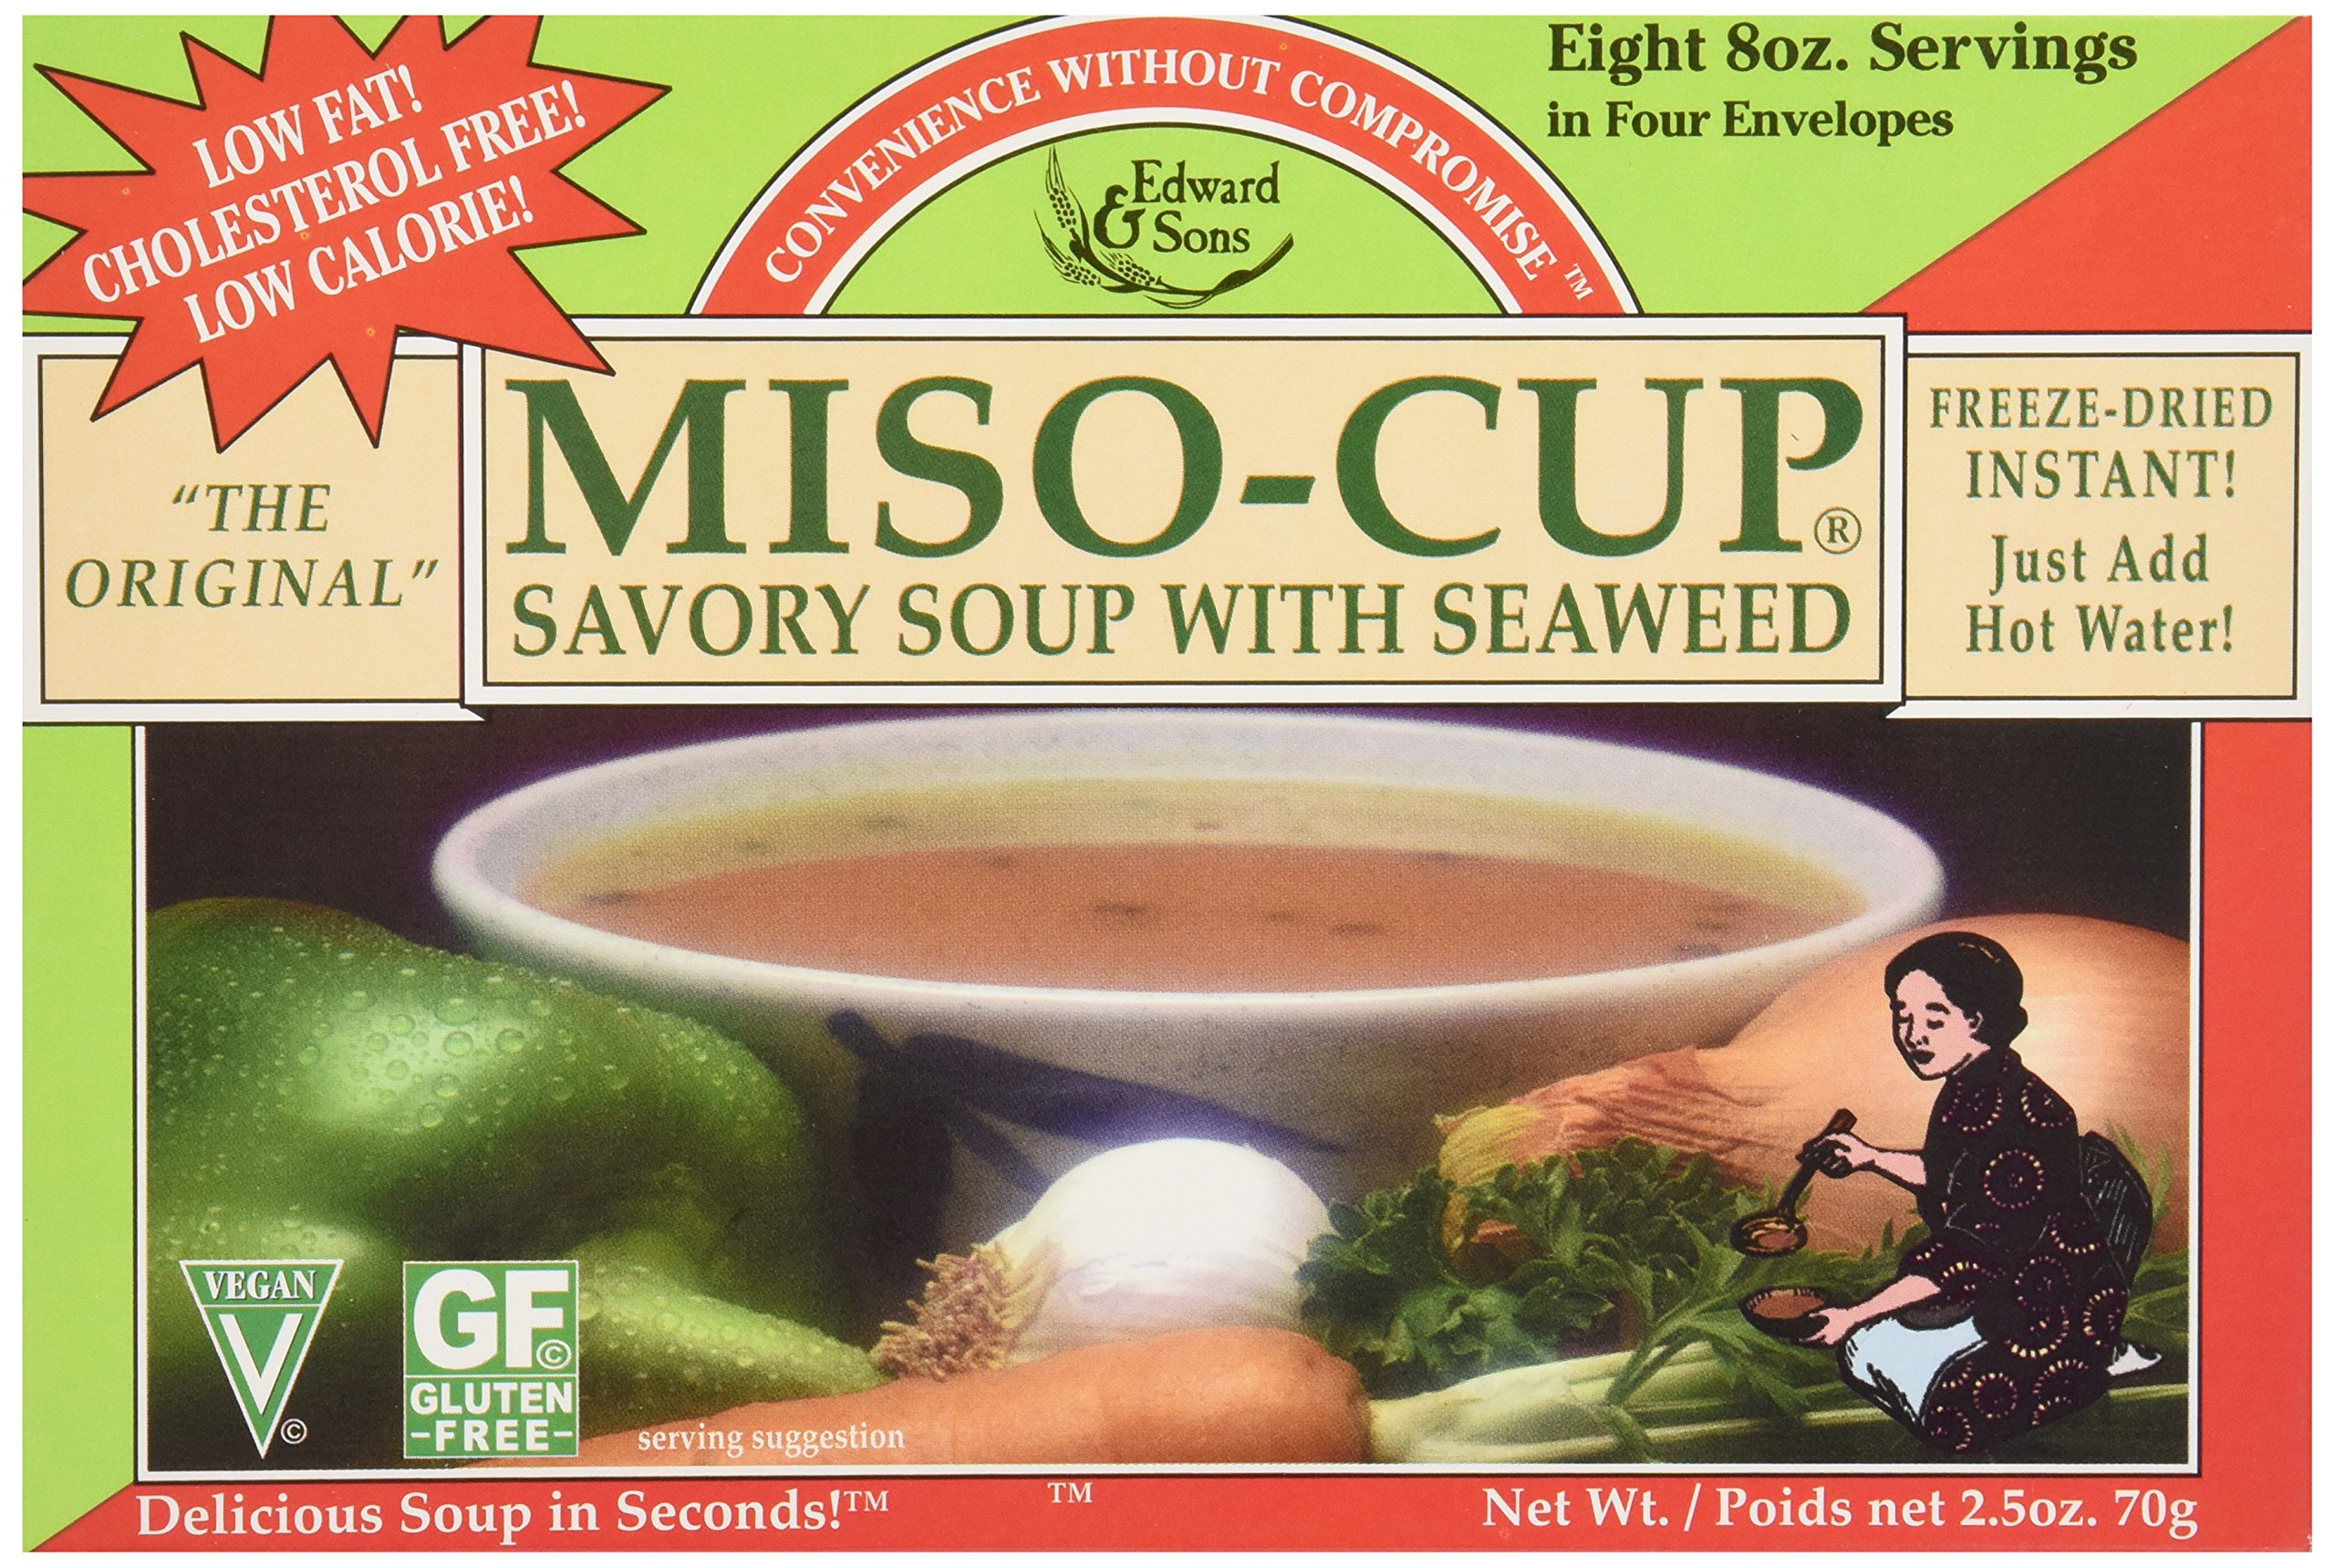 Edward & Sons Seaweed Miso Cup Instant Soup, 2.5 oz